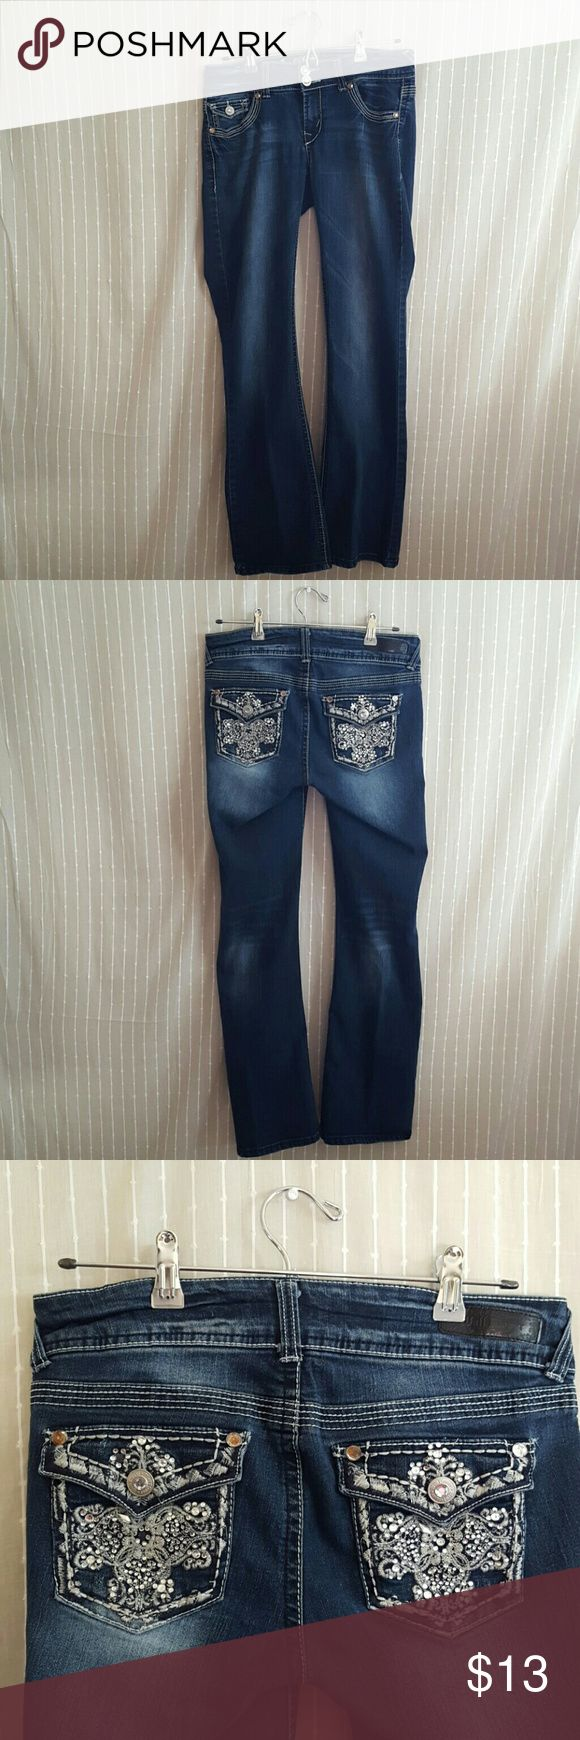 Wallflower Embellished Jeans Wallflower stretchy blue jeans with embellished pockets. Size 9 but would fit a women's 8. Great condition.   Measurements laying flat in inches  Waist 14.5 Hips 17.5 Length 40 Front Rise 8 Inseam 31 Wallflower Jeans Boot Cut